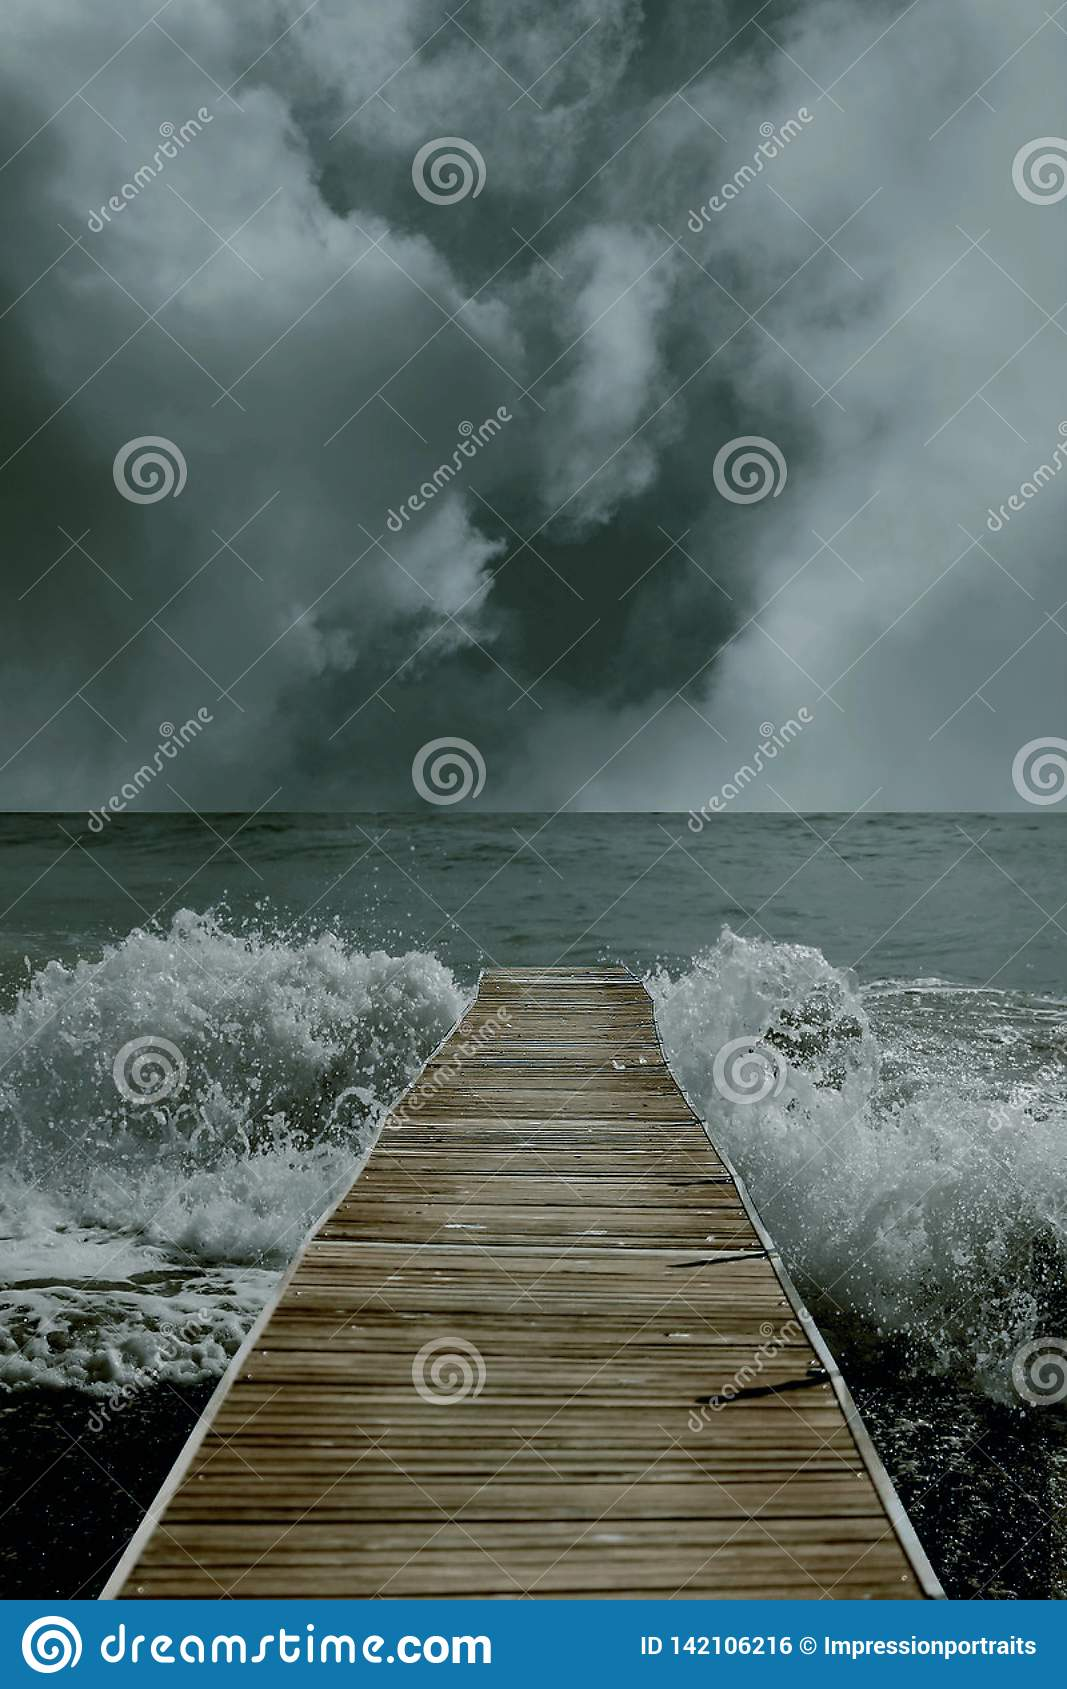 3D illustration of a bay leading to the ocean with horizon and waves